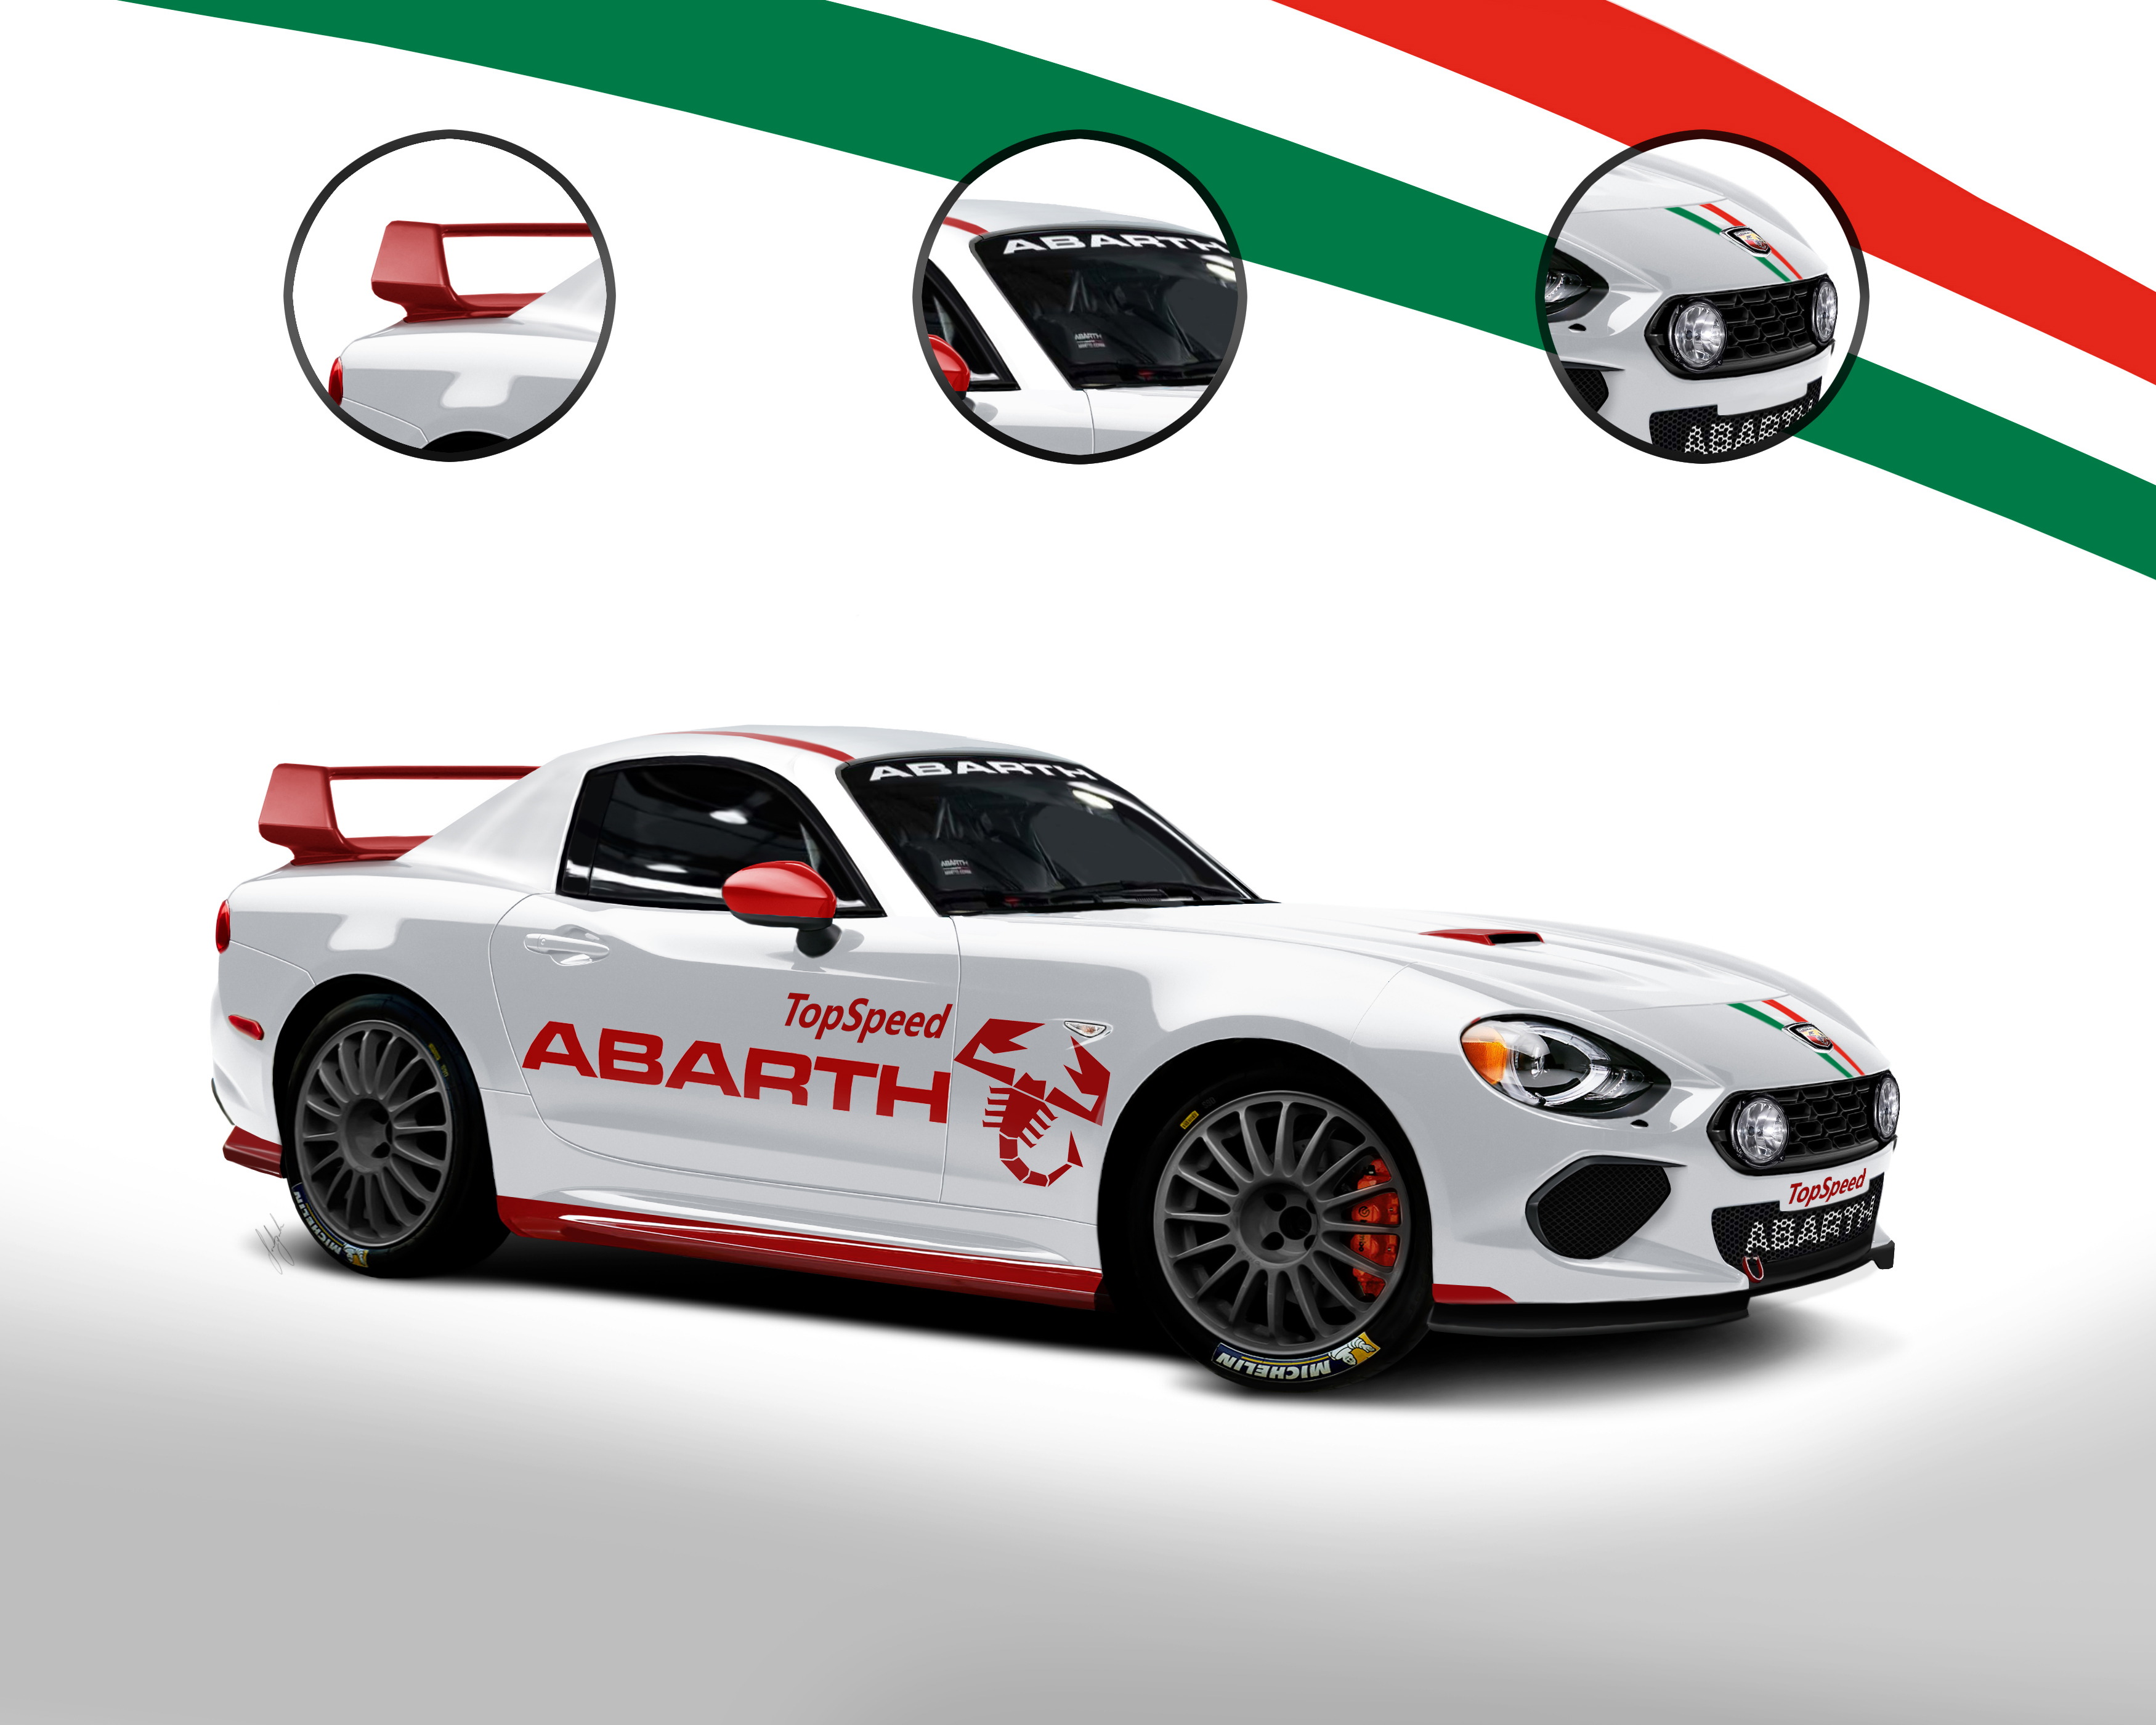 2018 Abarth 124 Wrc Top Speed